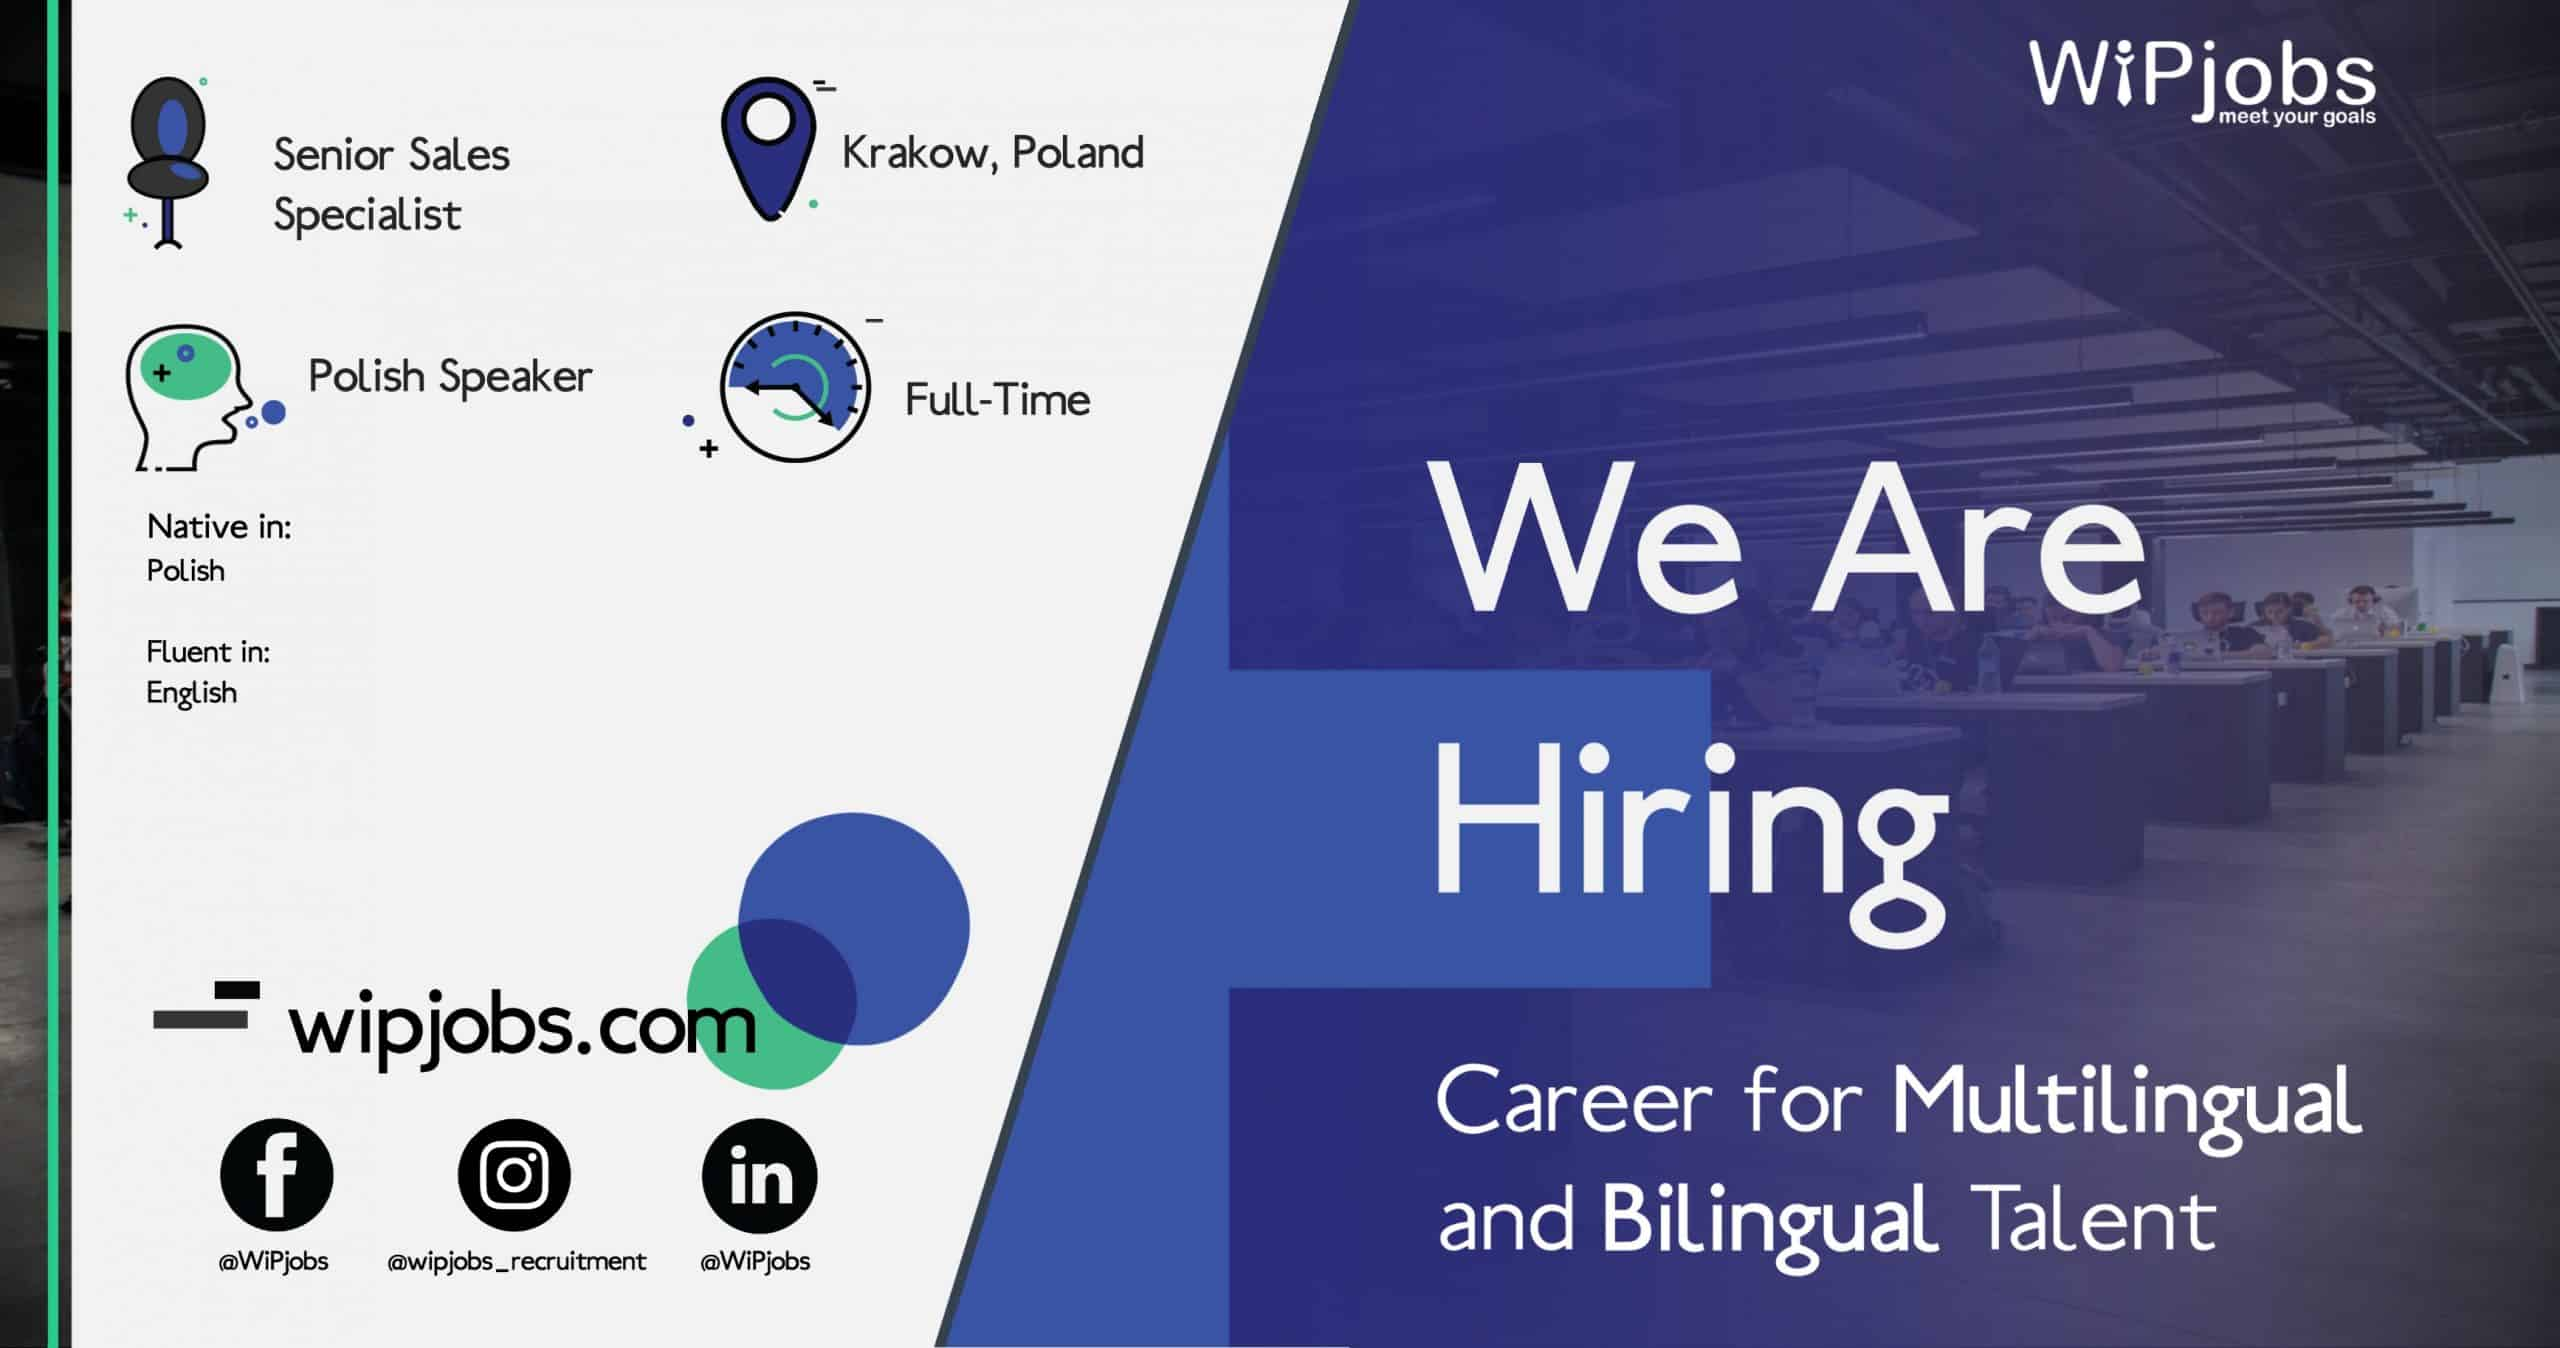 Senior Sales Specialist POLISH Speaker